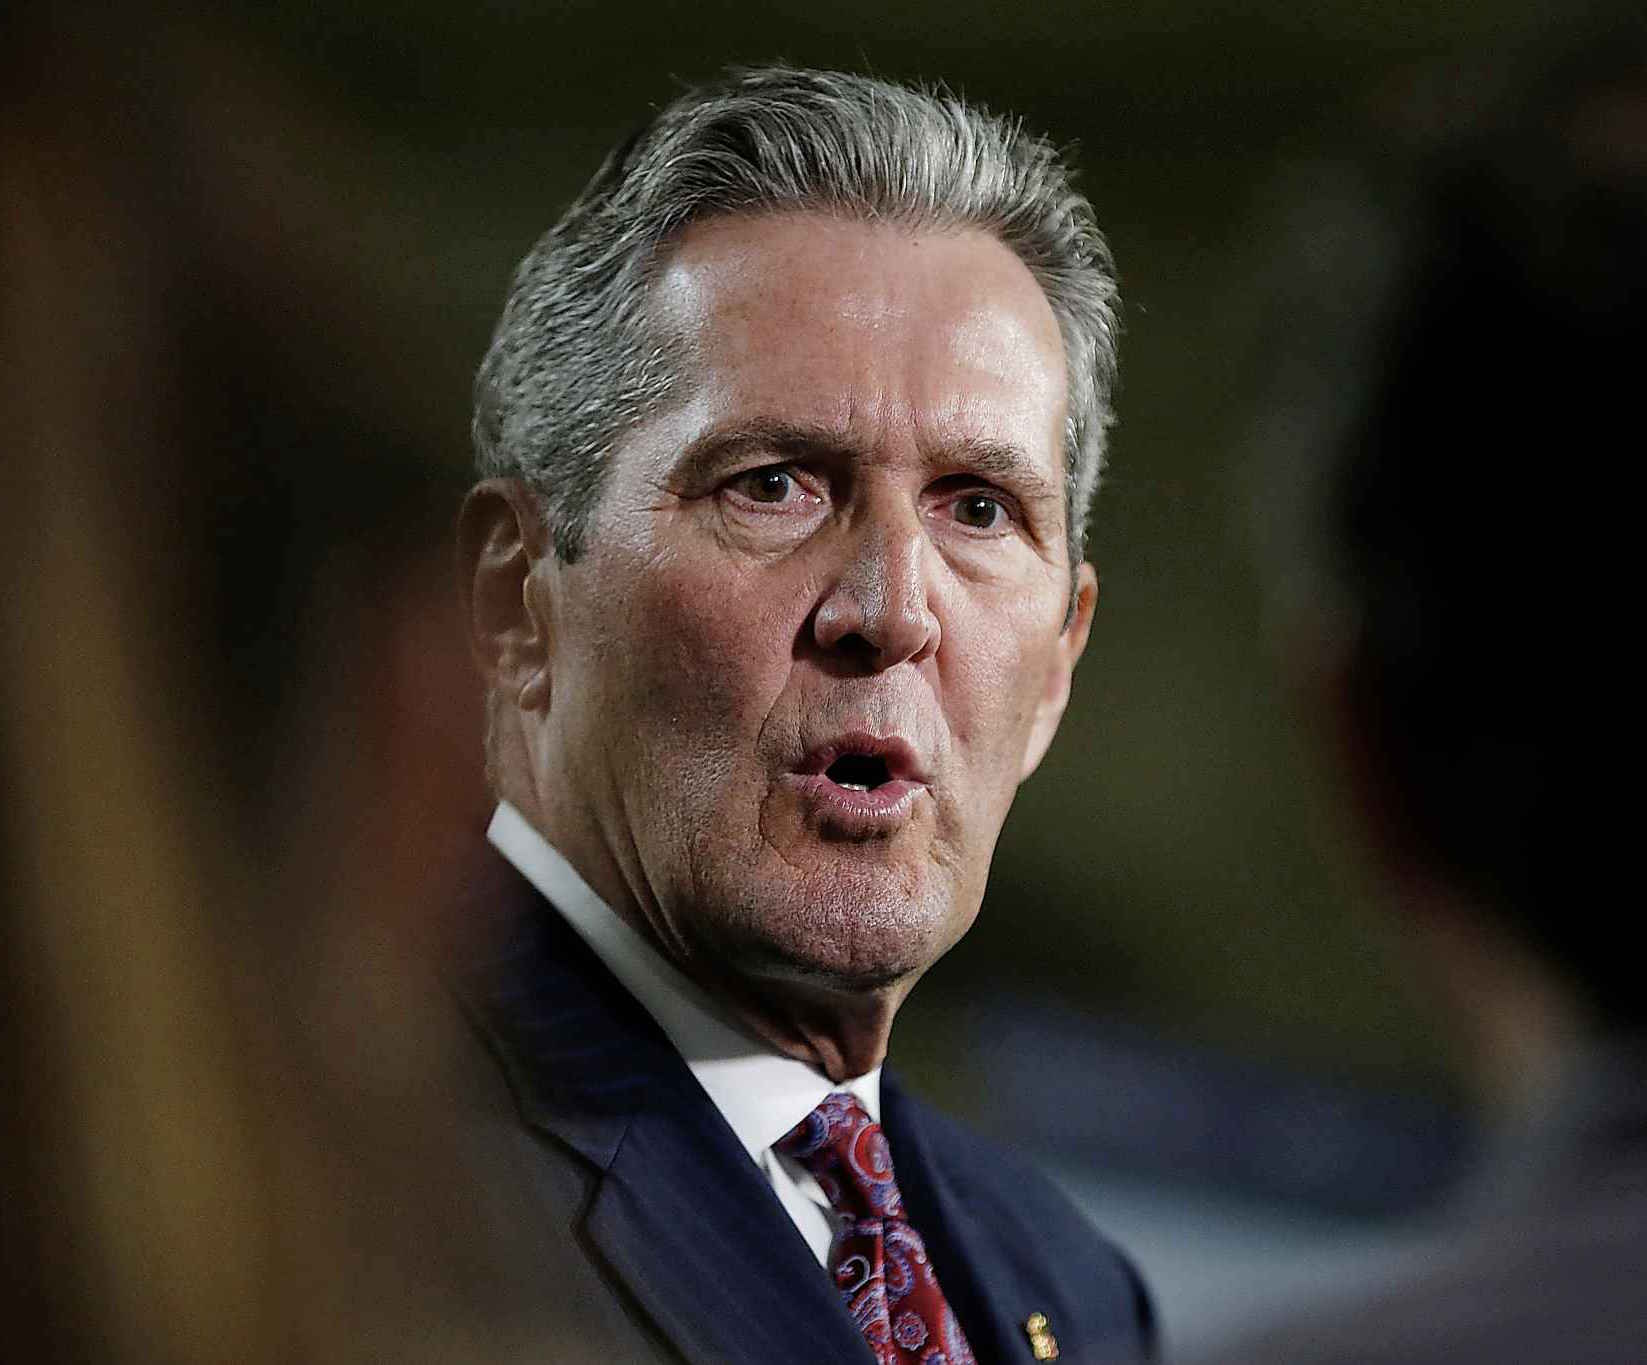 Premier Brian Pallister has denied the government has issued any directives to MPI on the issue of online sales.